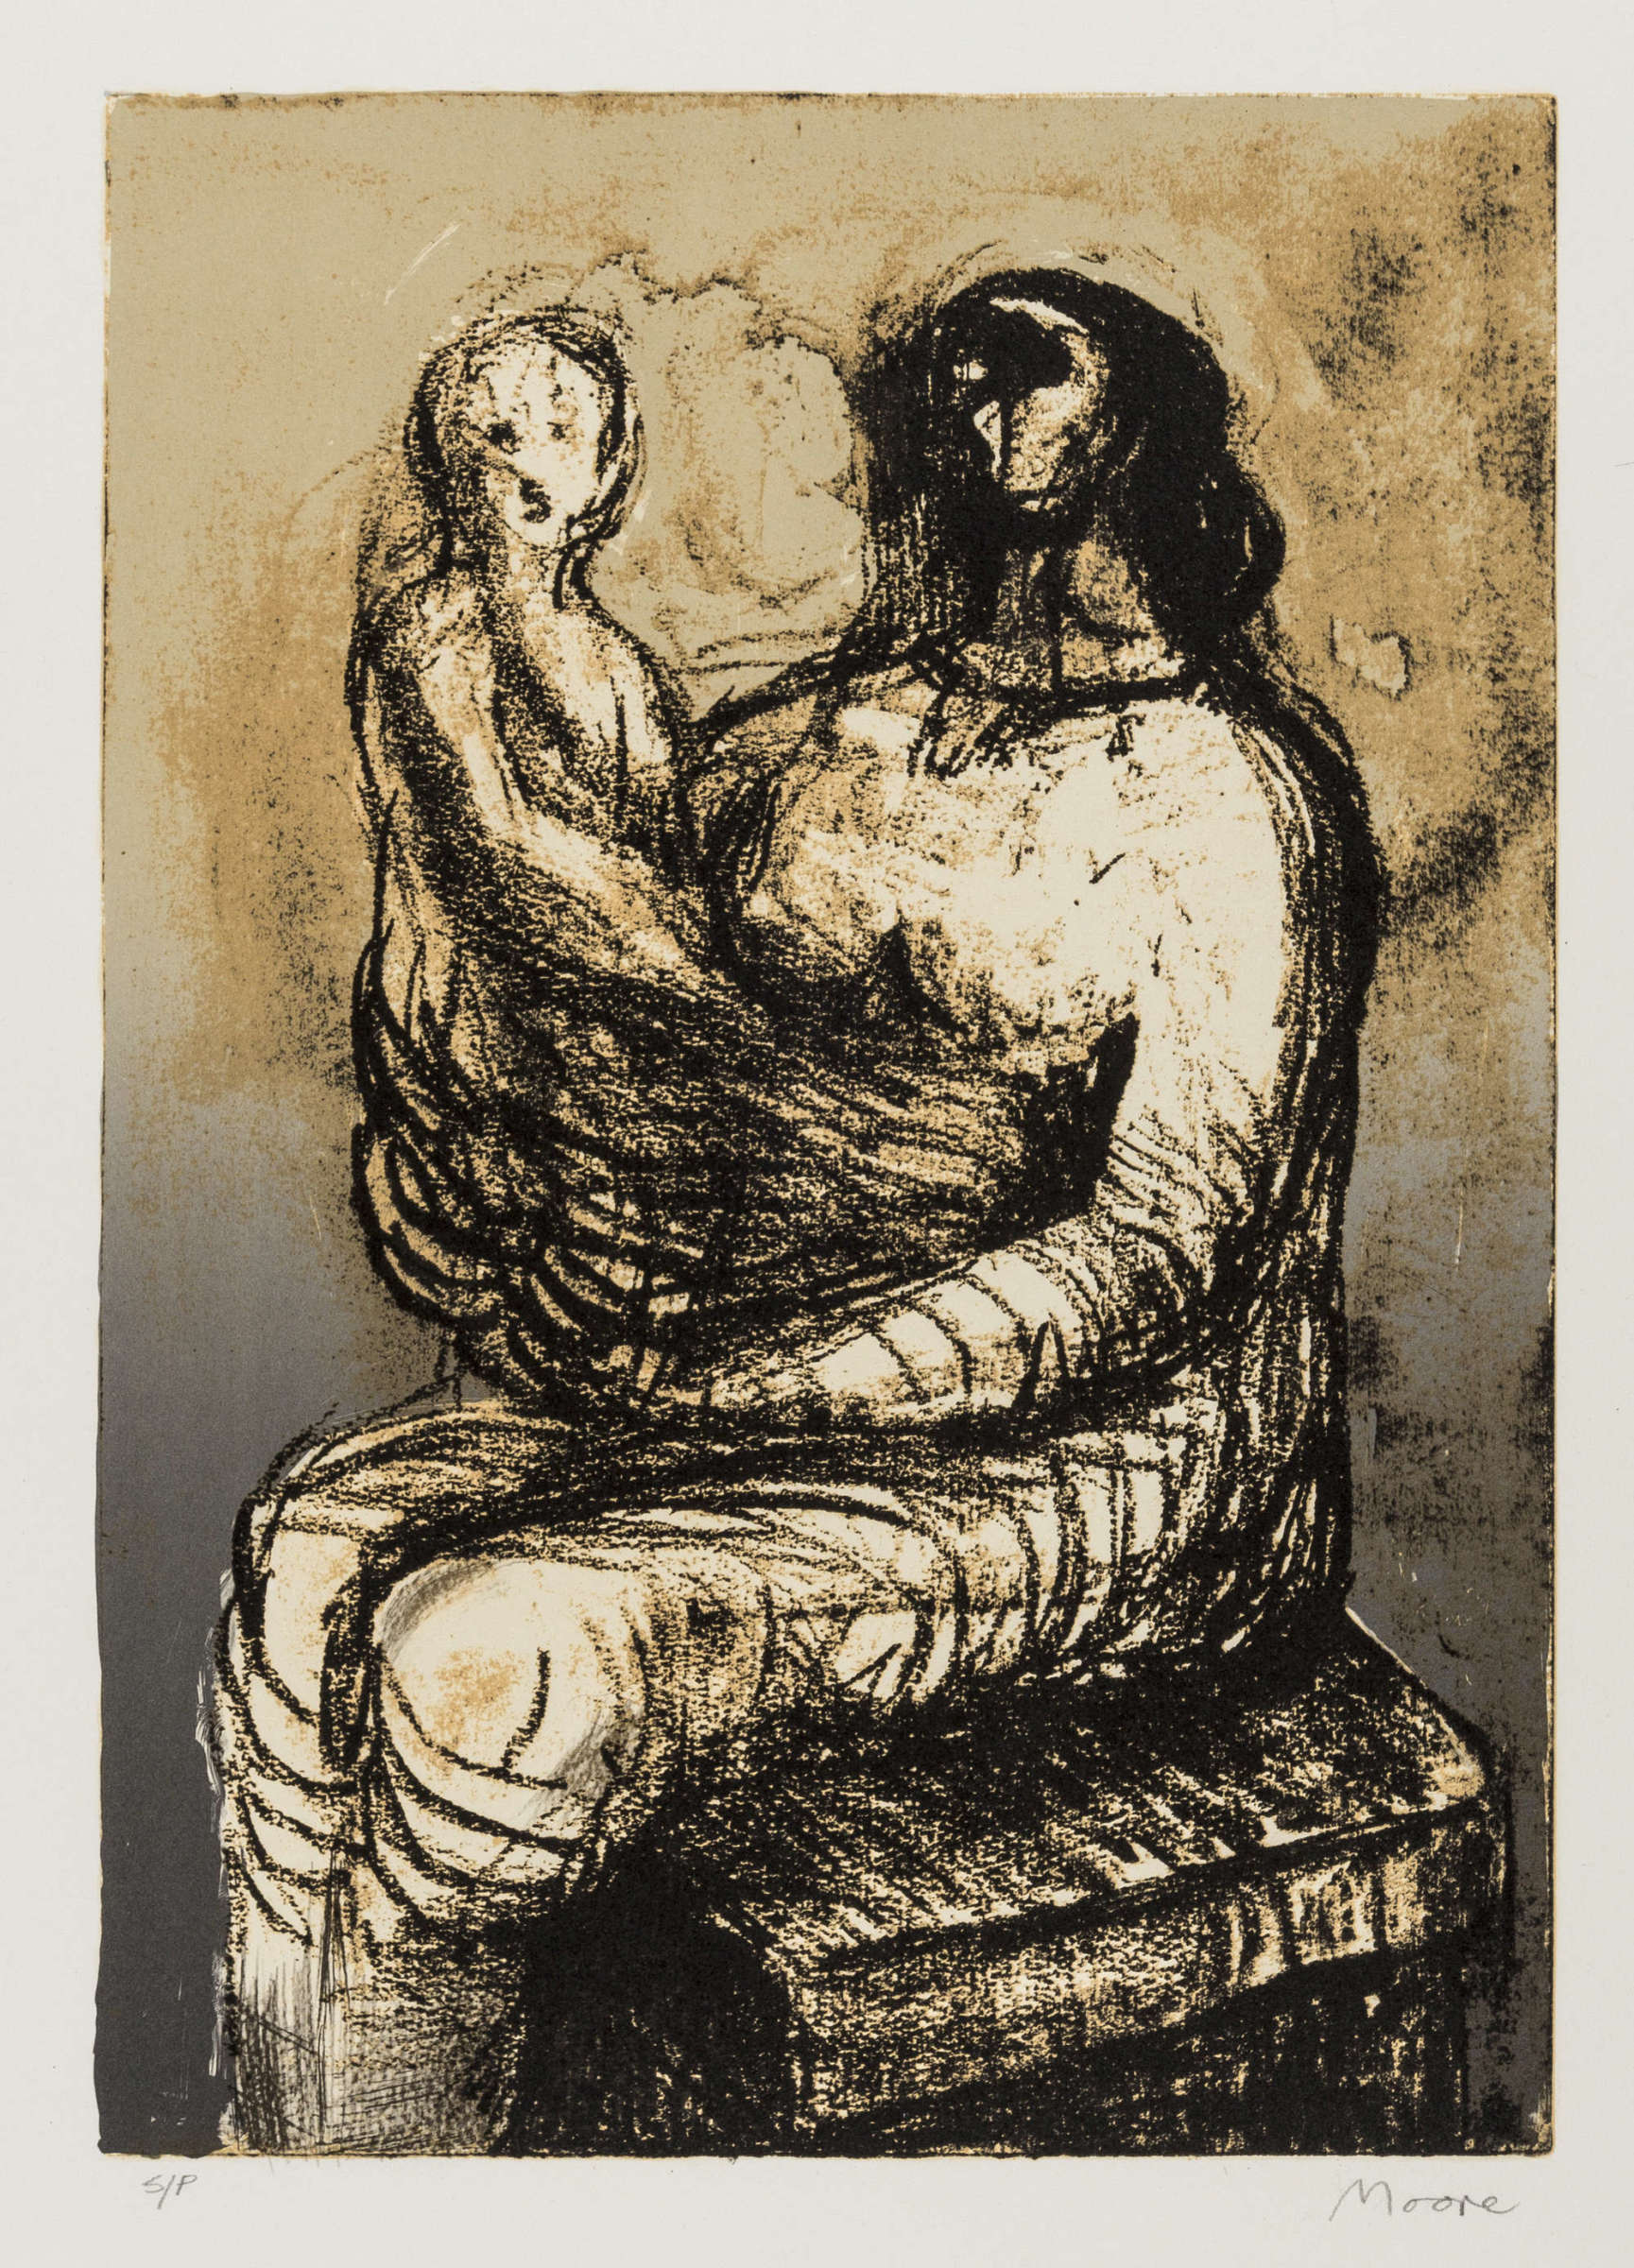 "<span class=""link fancybox-details-link""><a href=""/artists/111-henry-moore-om-ch/works/4878-henry-moore-om-ch-mother-with-child-on-lap-cramer-651-1982/"">View Detail Page</a></span><div class=""artist""><strong>Henry Moore OM CH</strong></div> 1898–1986 <div class=""title""><em>Mother with Child on Lap (Cramer 651)</em>, 1982</div> <div class=""signed_and_dated"">signed and inscribed s/p in pencil</div> <div class=""medium"">lithograph printed in colours, with full margins</div> <div class=""dimensions"">sheet size: 63.1 x 50.8 cm</div> <div class=""edition_details"">a studio proof aside from the edition of 50</div><div class=""copyright_line"">@ The Estate of Henry Moore</div>"